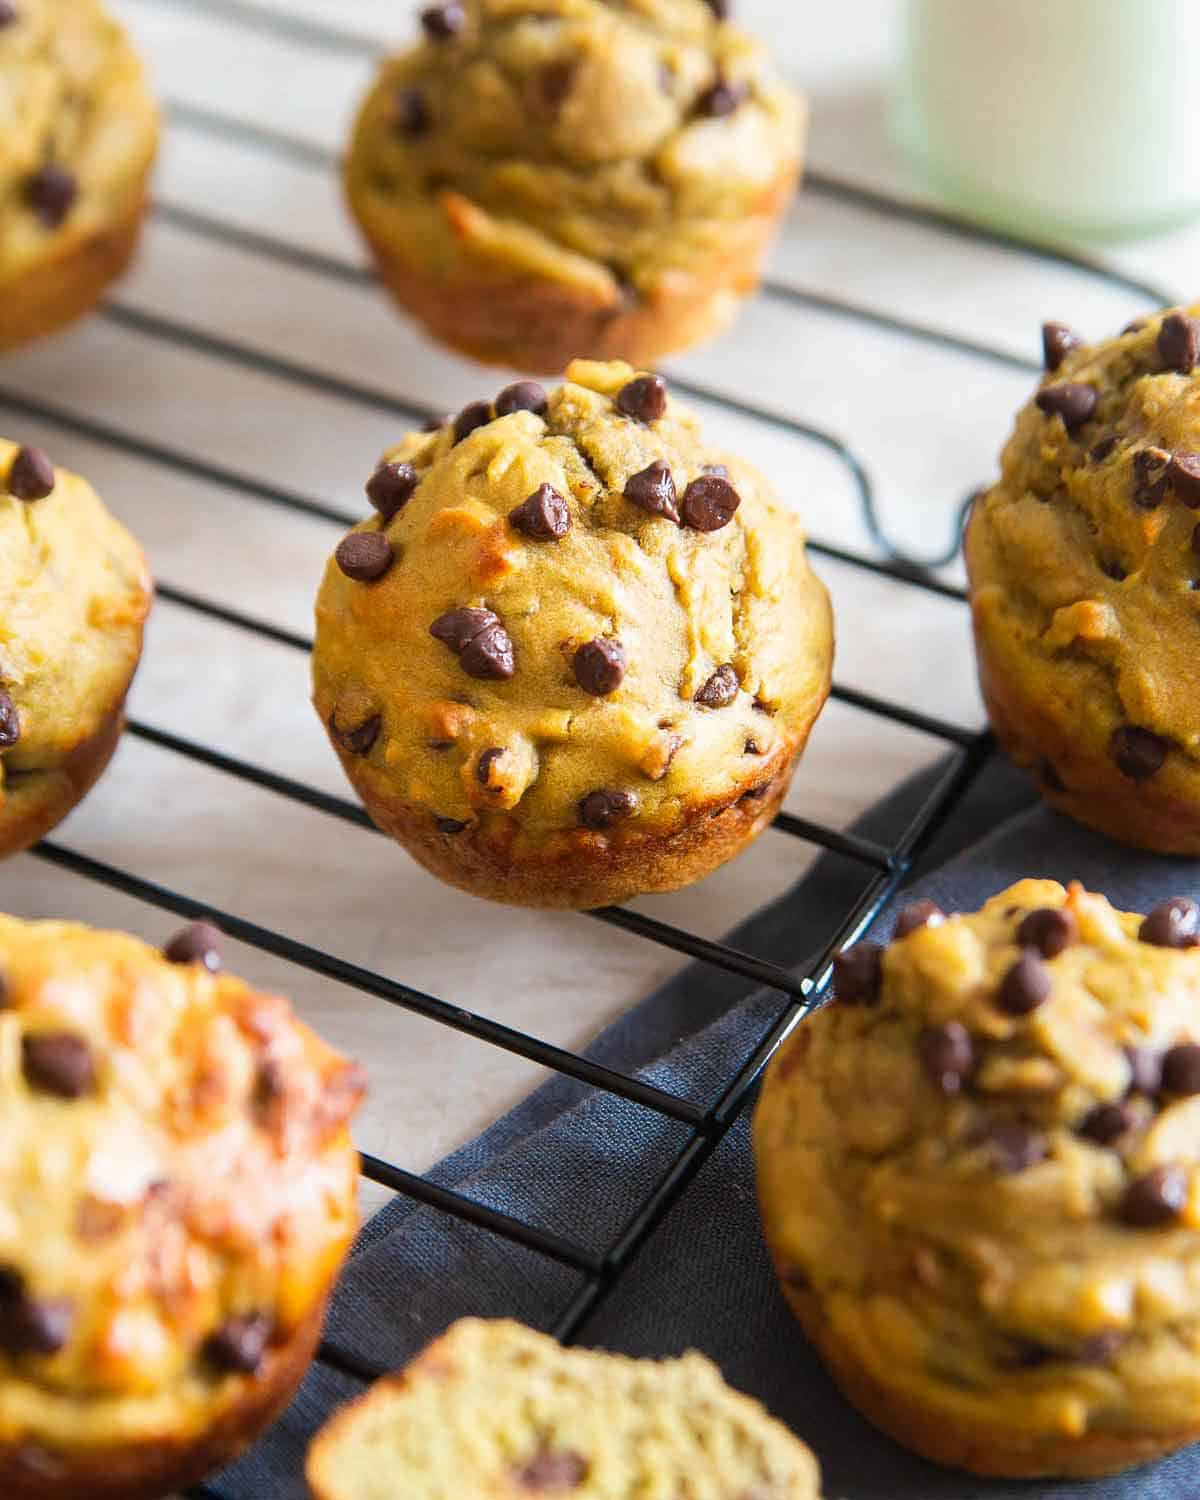 Avocado muffins sweetened with banana and honey are a healthy, wholesome snack you'll love.